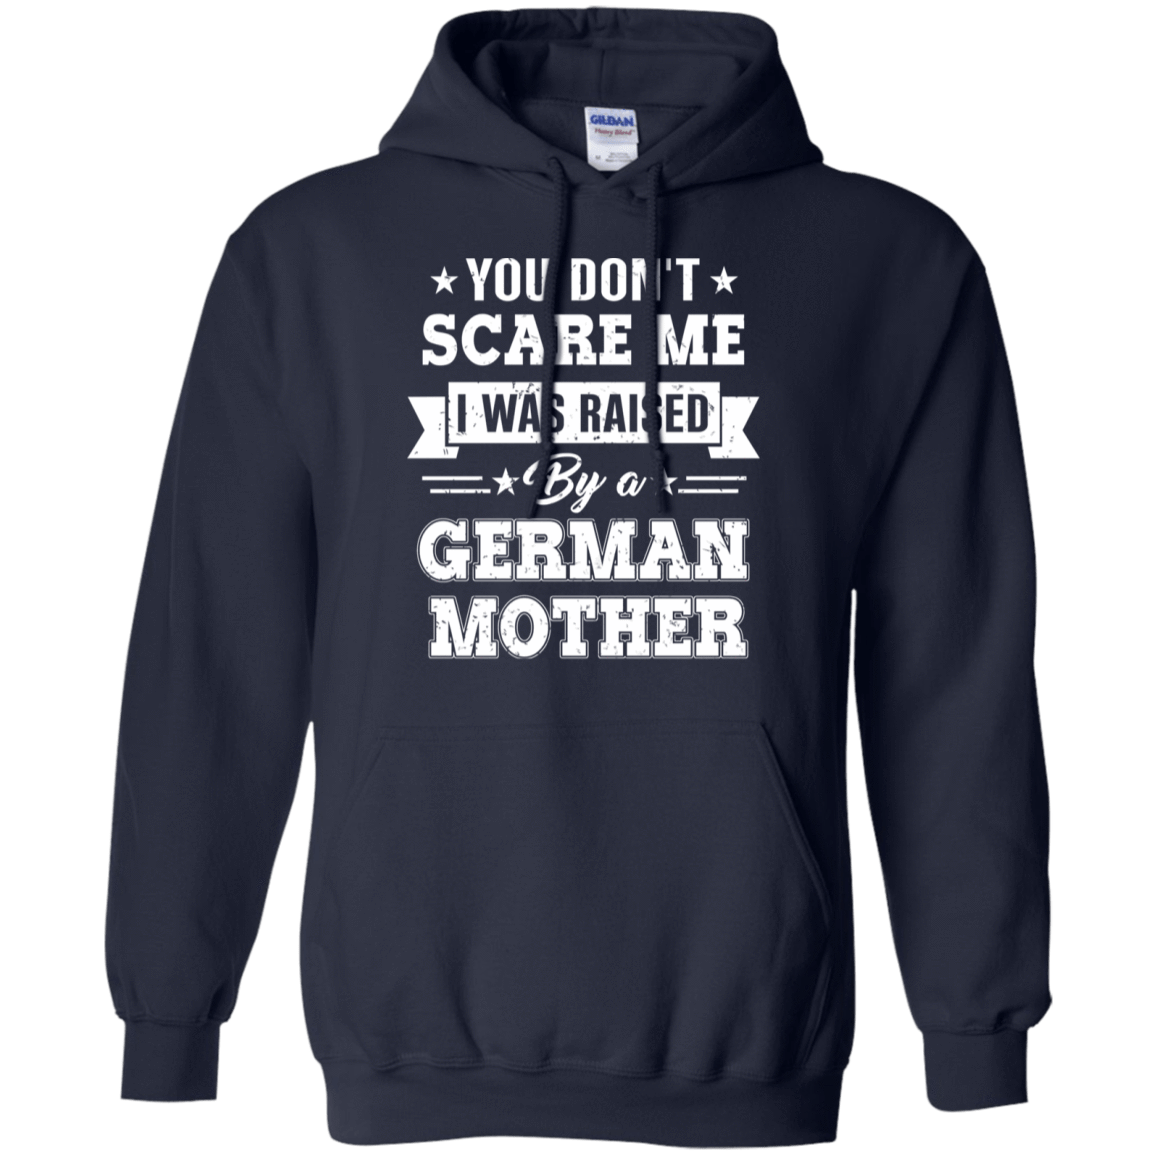 You Don't Scare Me I Was Raised By A German Mother 541-4742-72513783-23135 - Tee Ript